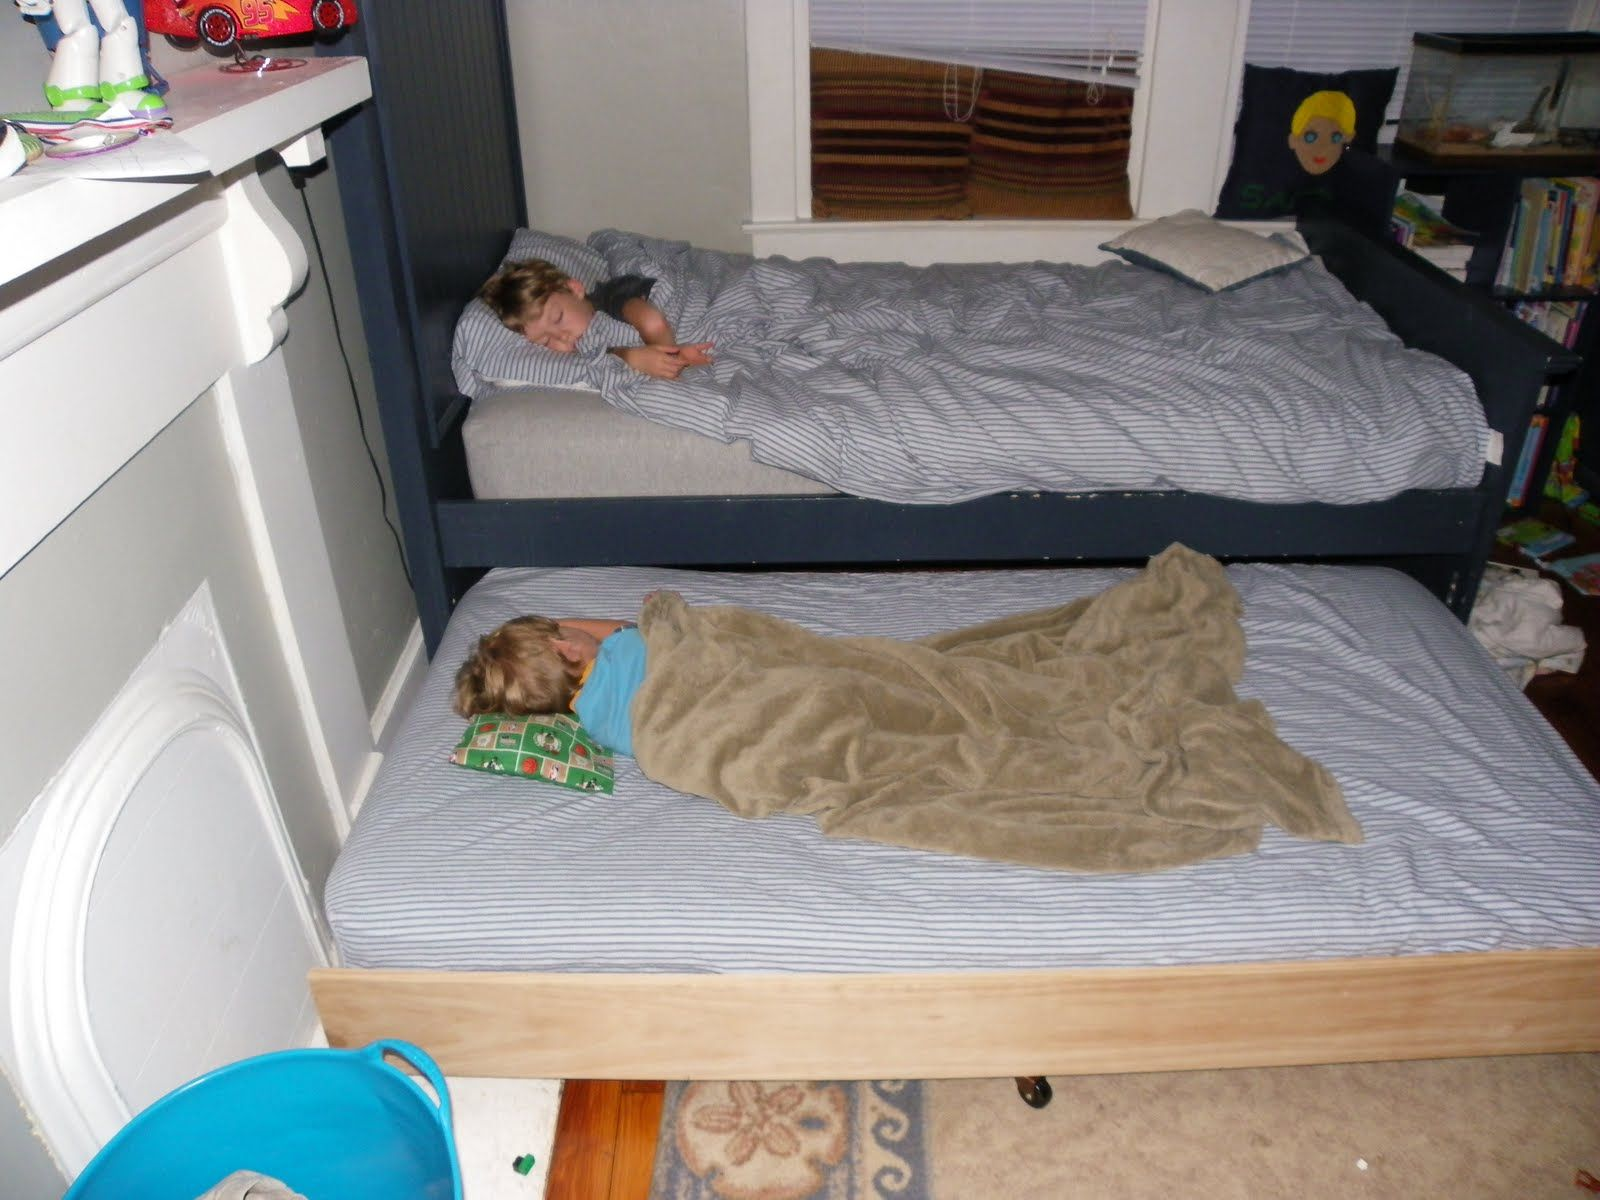 How To Make A Trundle Bed Would Be Good For Extra Beds For When Company Comes Trundle Bed Trundle Bed Frame Trundle Bed With Storage